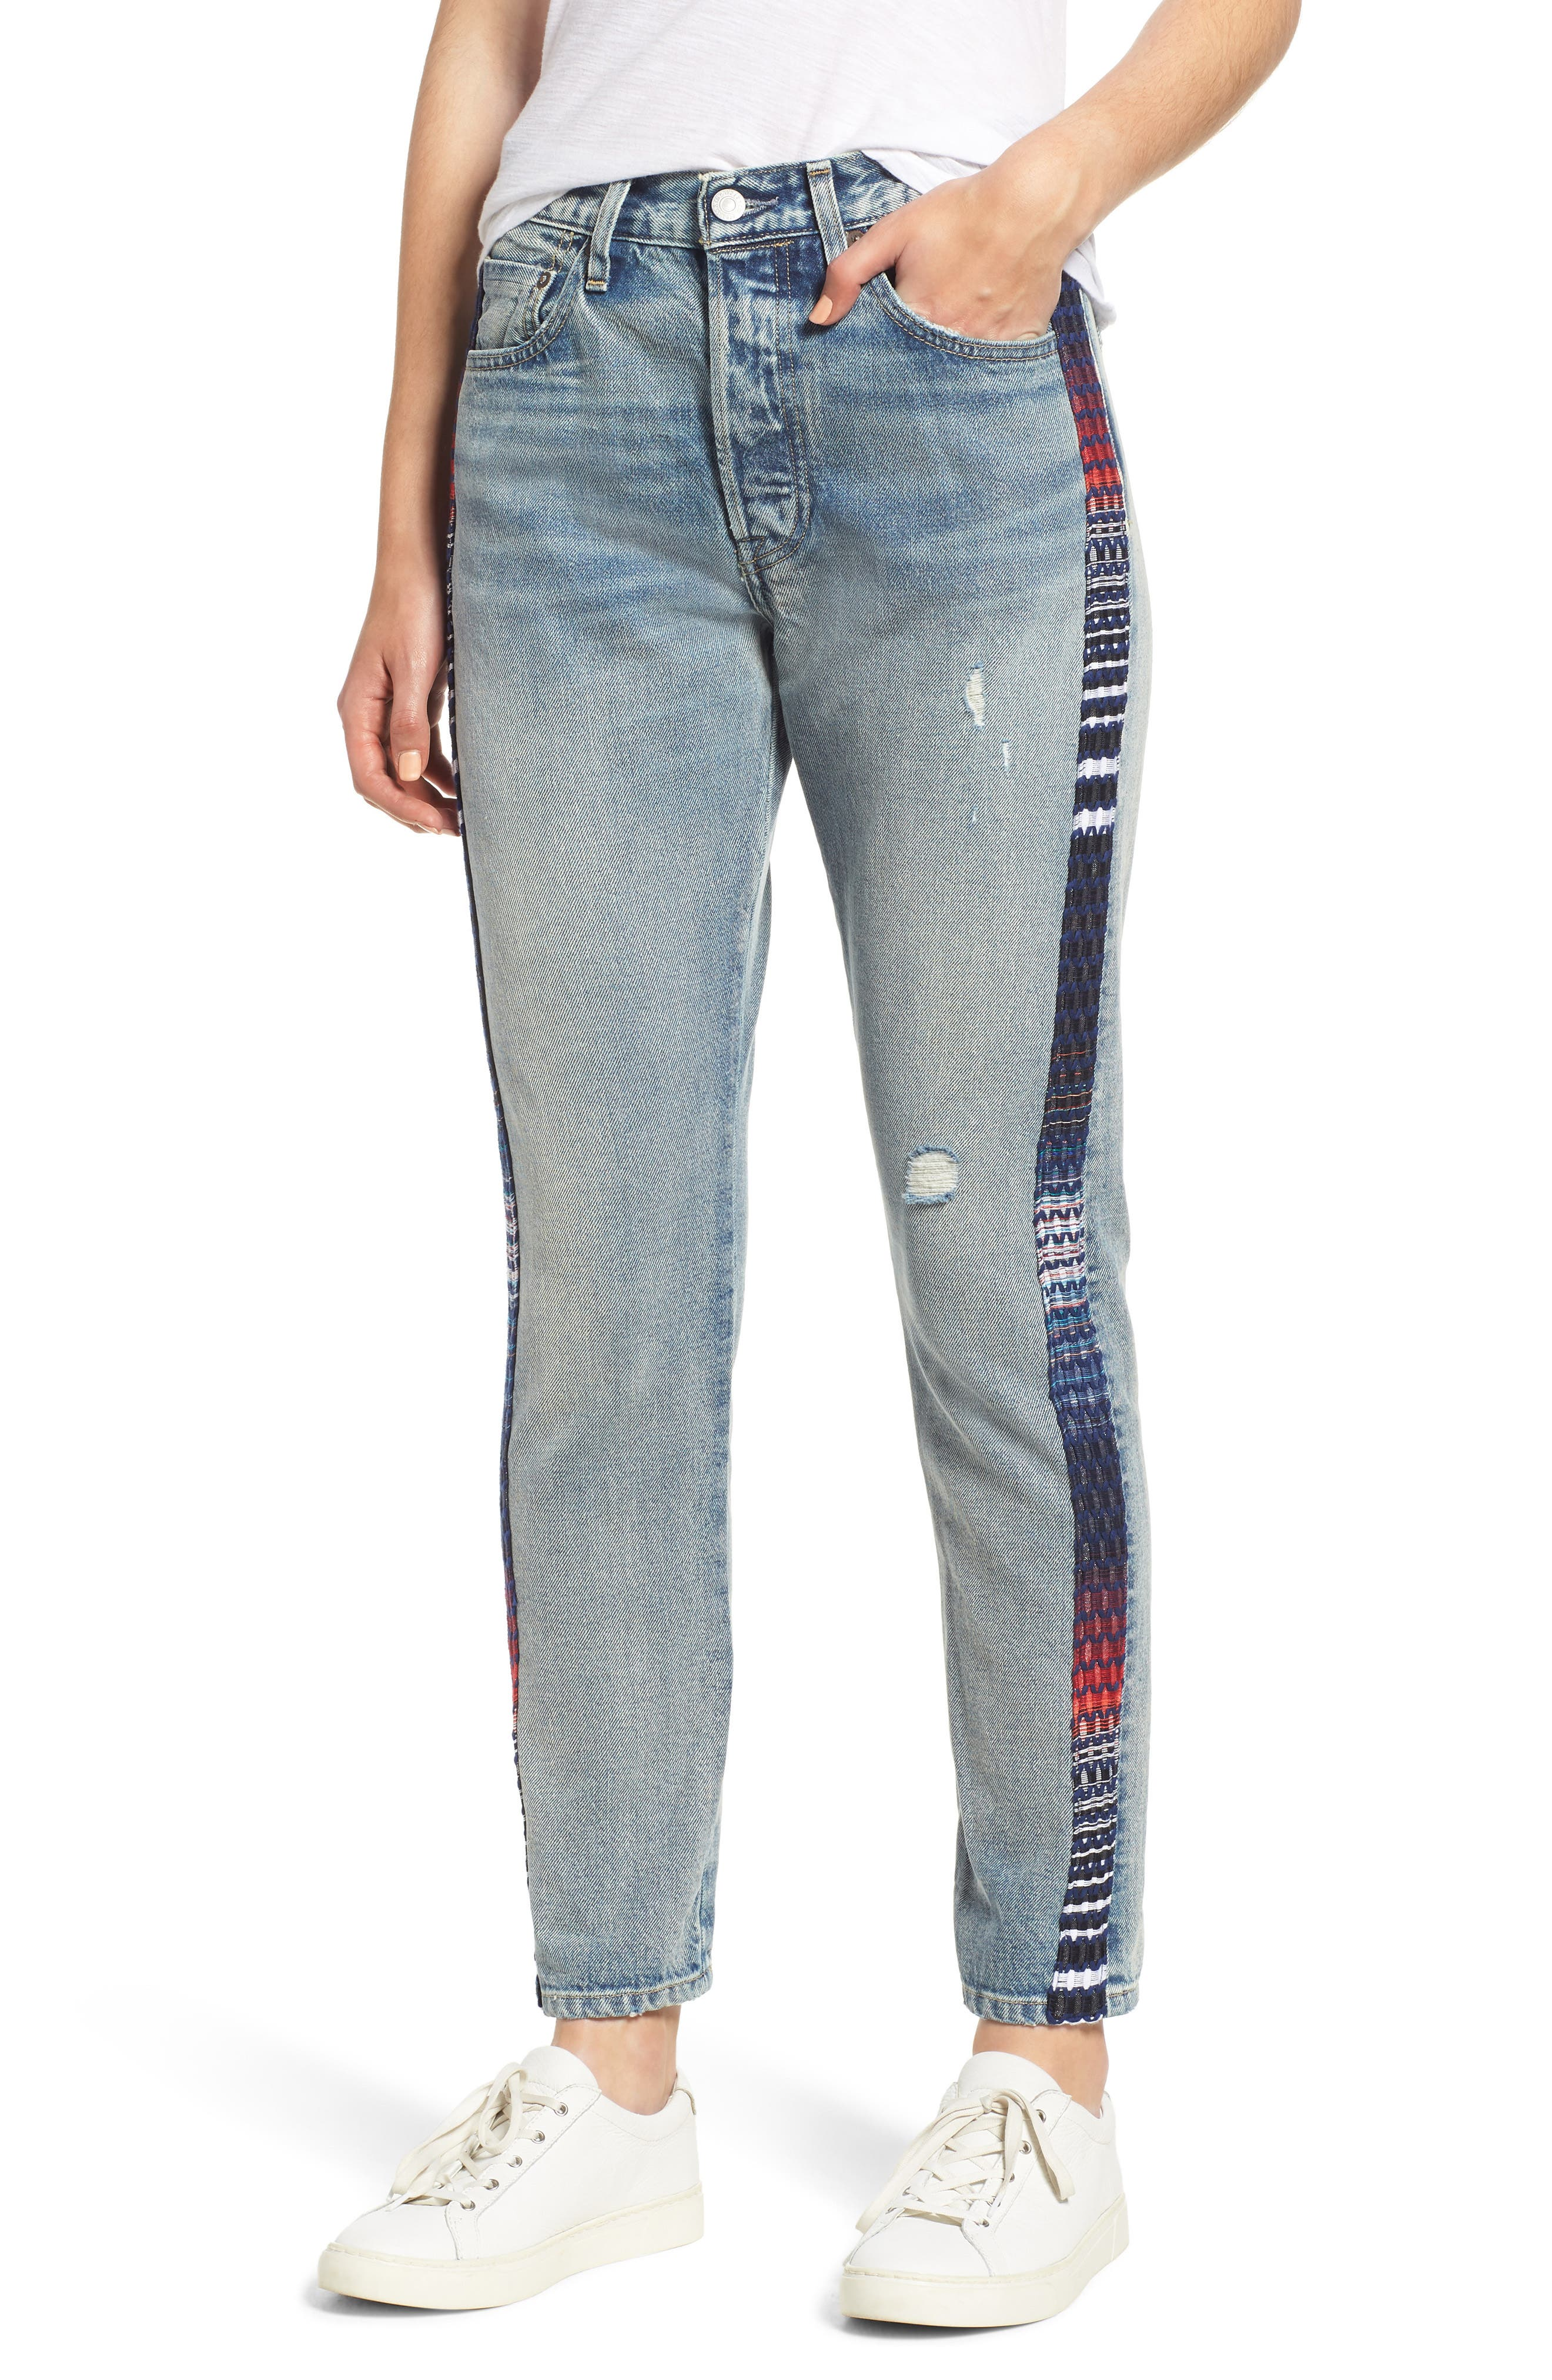 501 Cropped Skinny Jeans With Side Panels in Lmc Lovers Lane